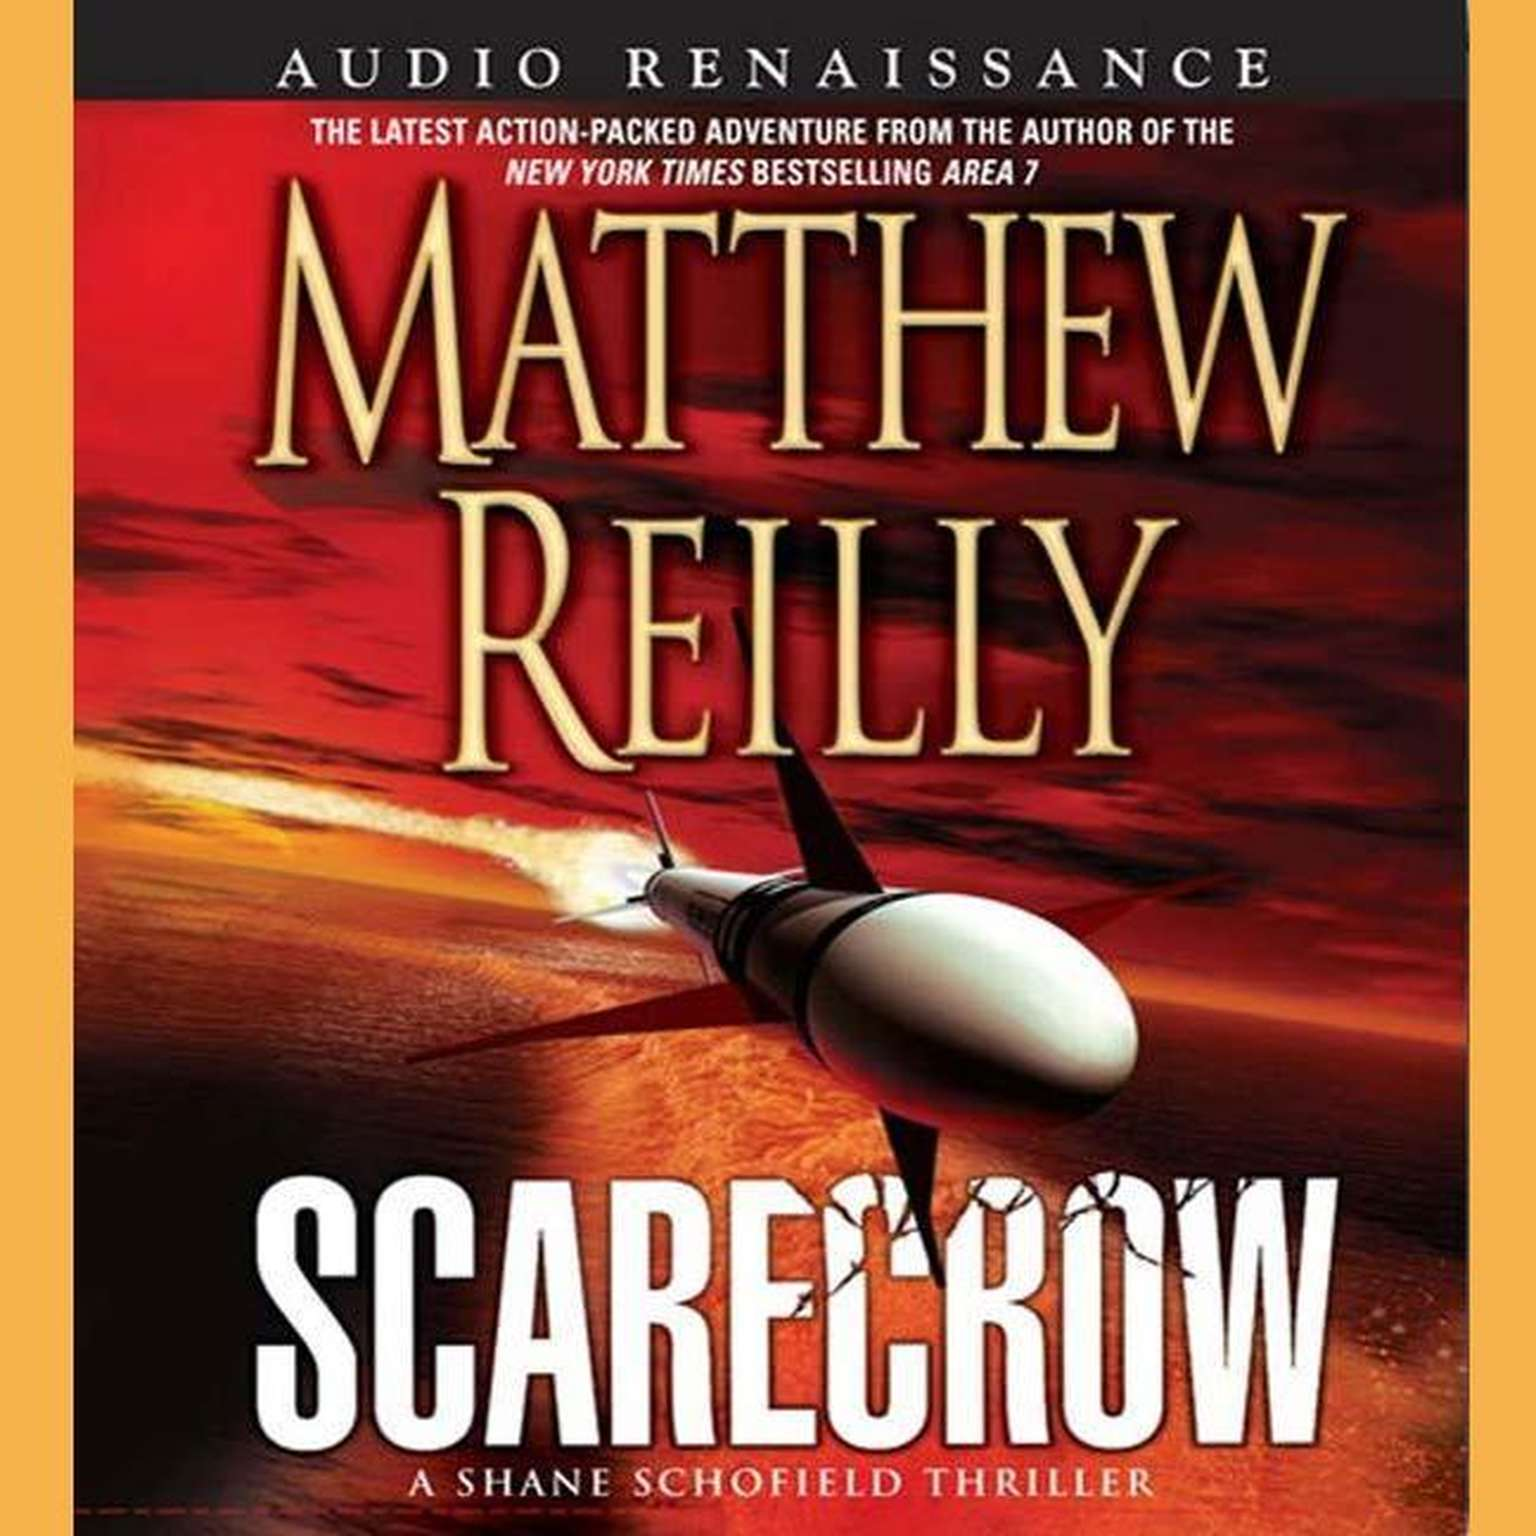 Printable Scarecrow: A Shane Schofield Thriller Audiobook Cover Art